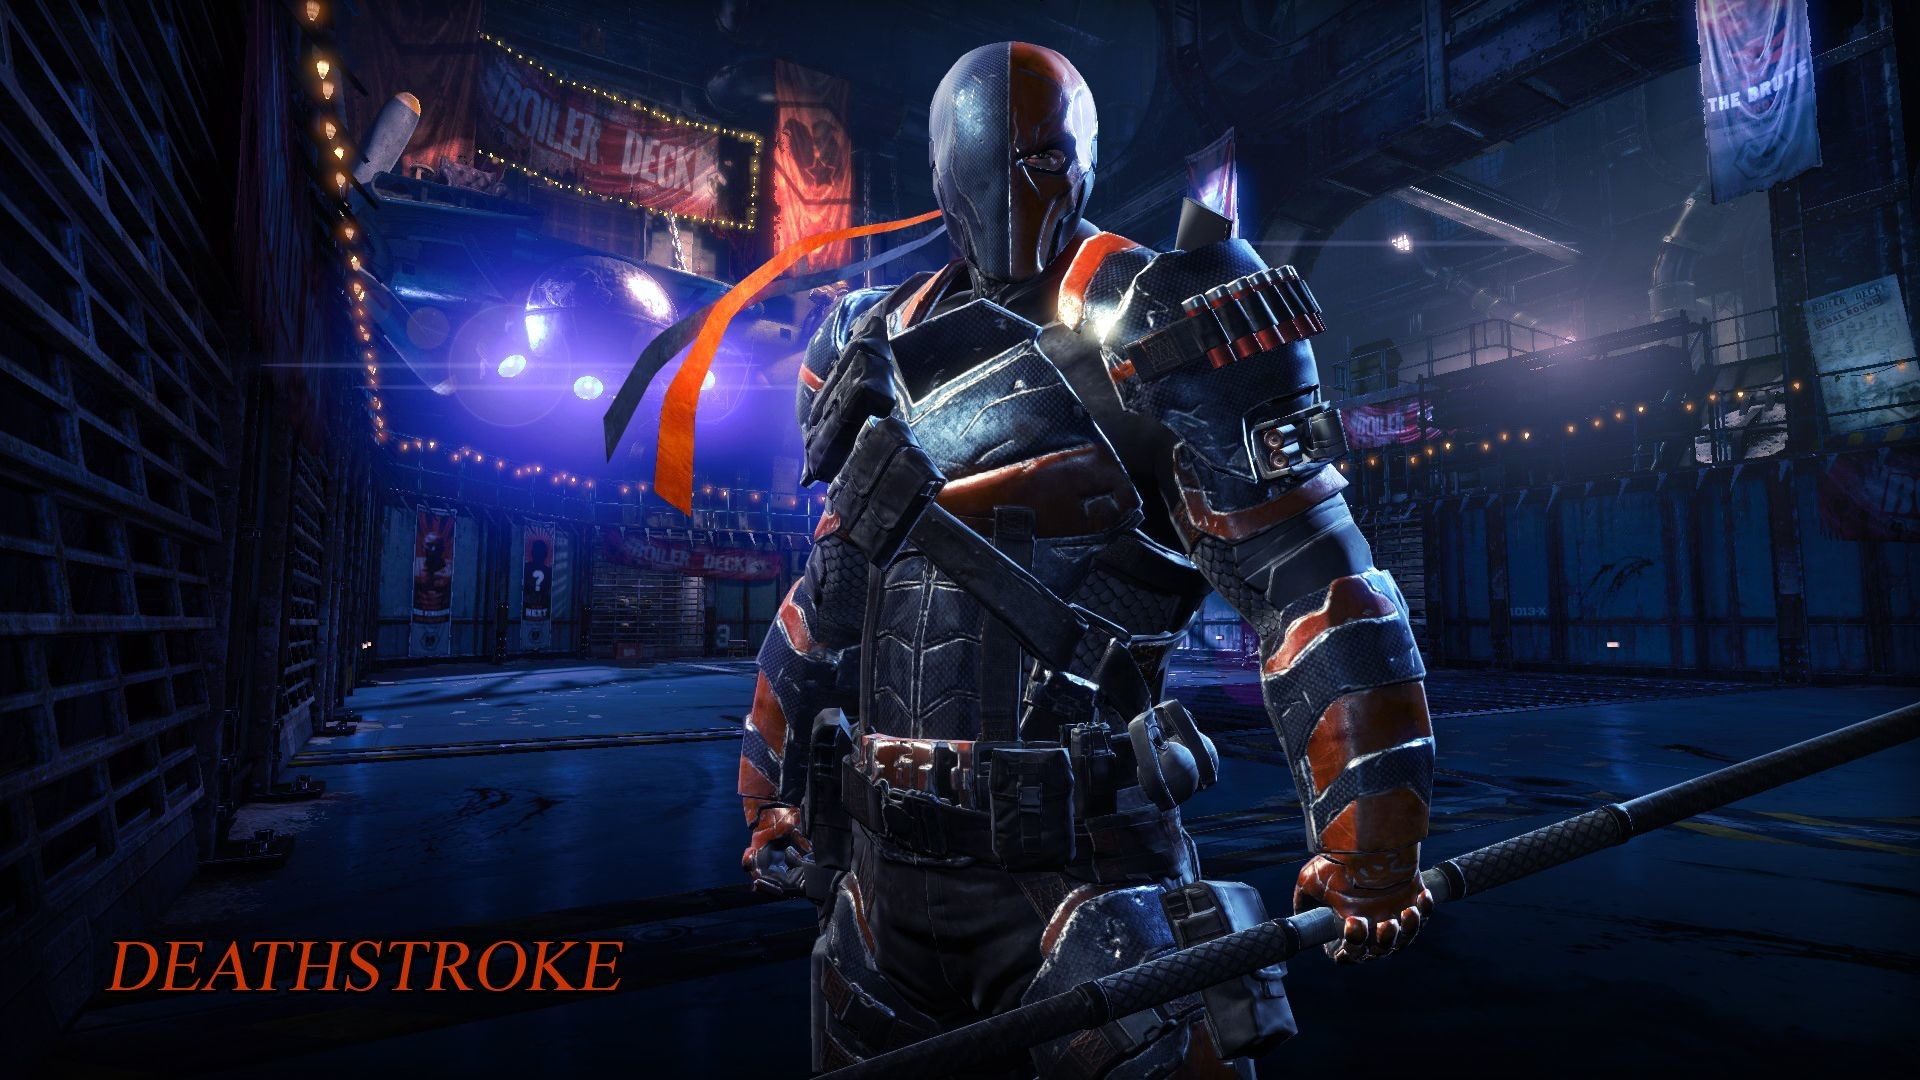 1920x1080 Batman Arkham Origins Deathstroke Wallpaper By DanteArtWallpapers